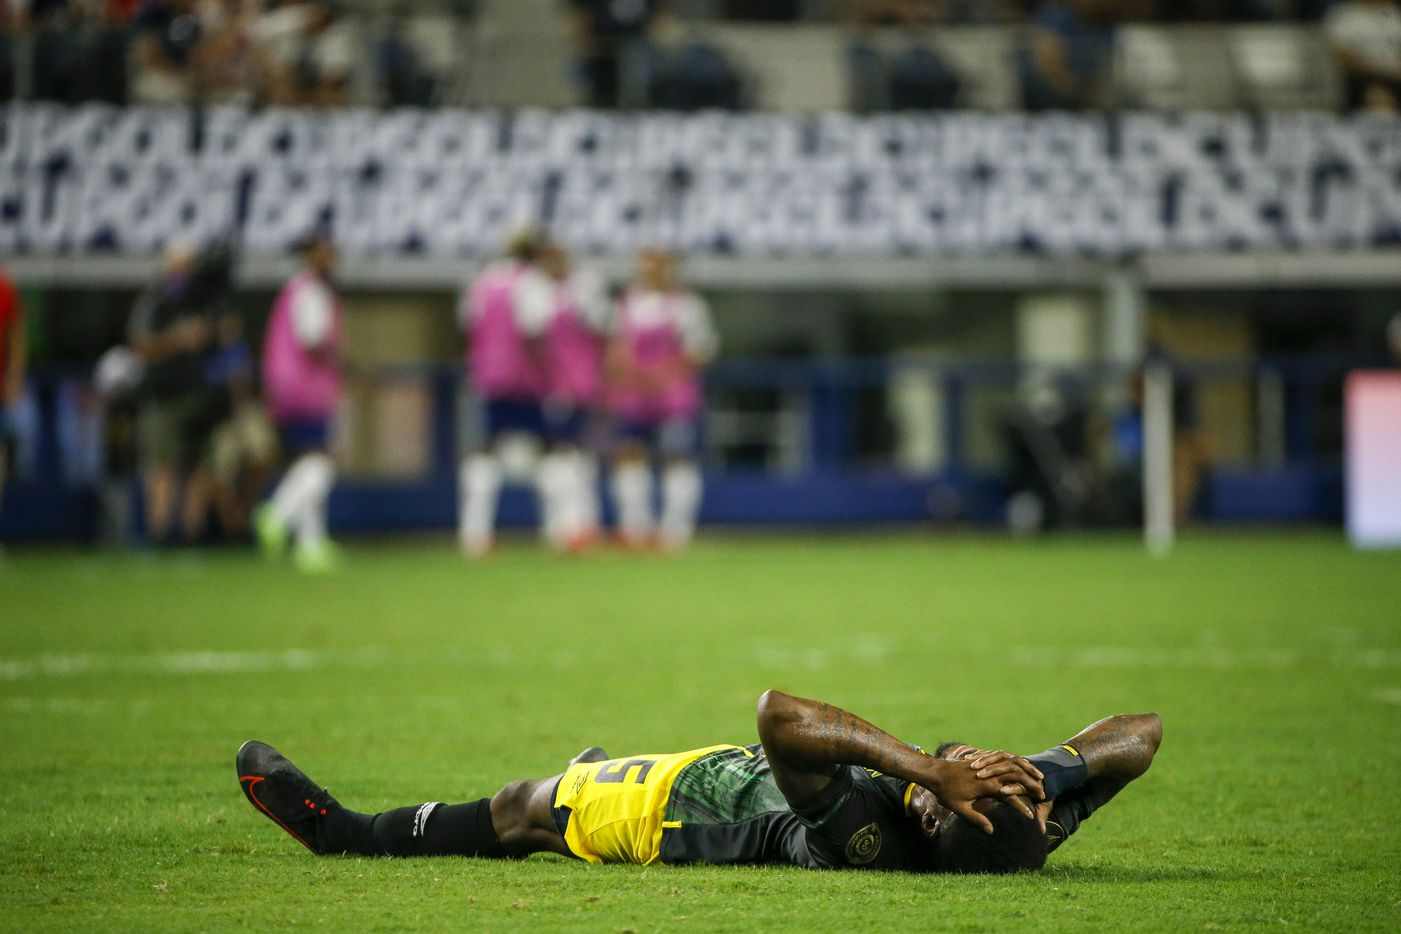 Jamaica defender Alvas Powell (5) lays on the ground injured during the first half of a CONCACAF Gold Cup quarterfinal soccer match against USA at AT&T Stadium on Sunday, July 25, 2021, in Arlington. (Elias Valverde II/The Dallas Morning News)